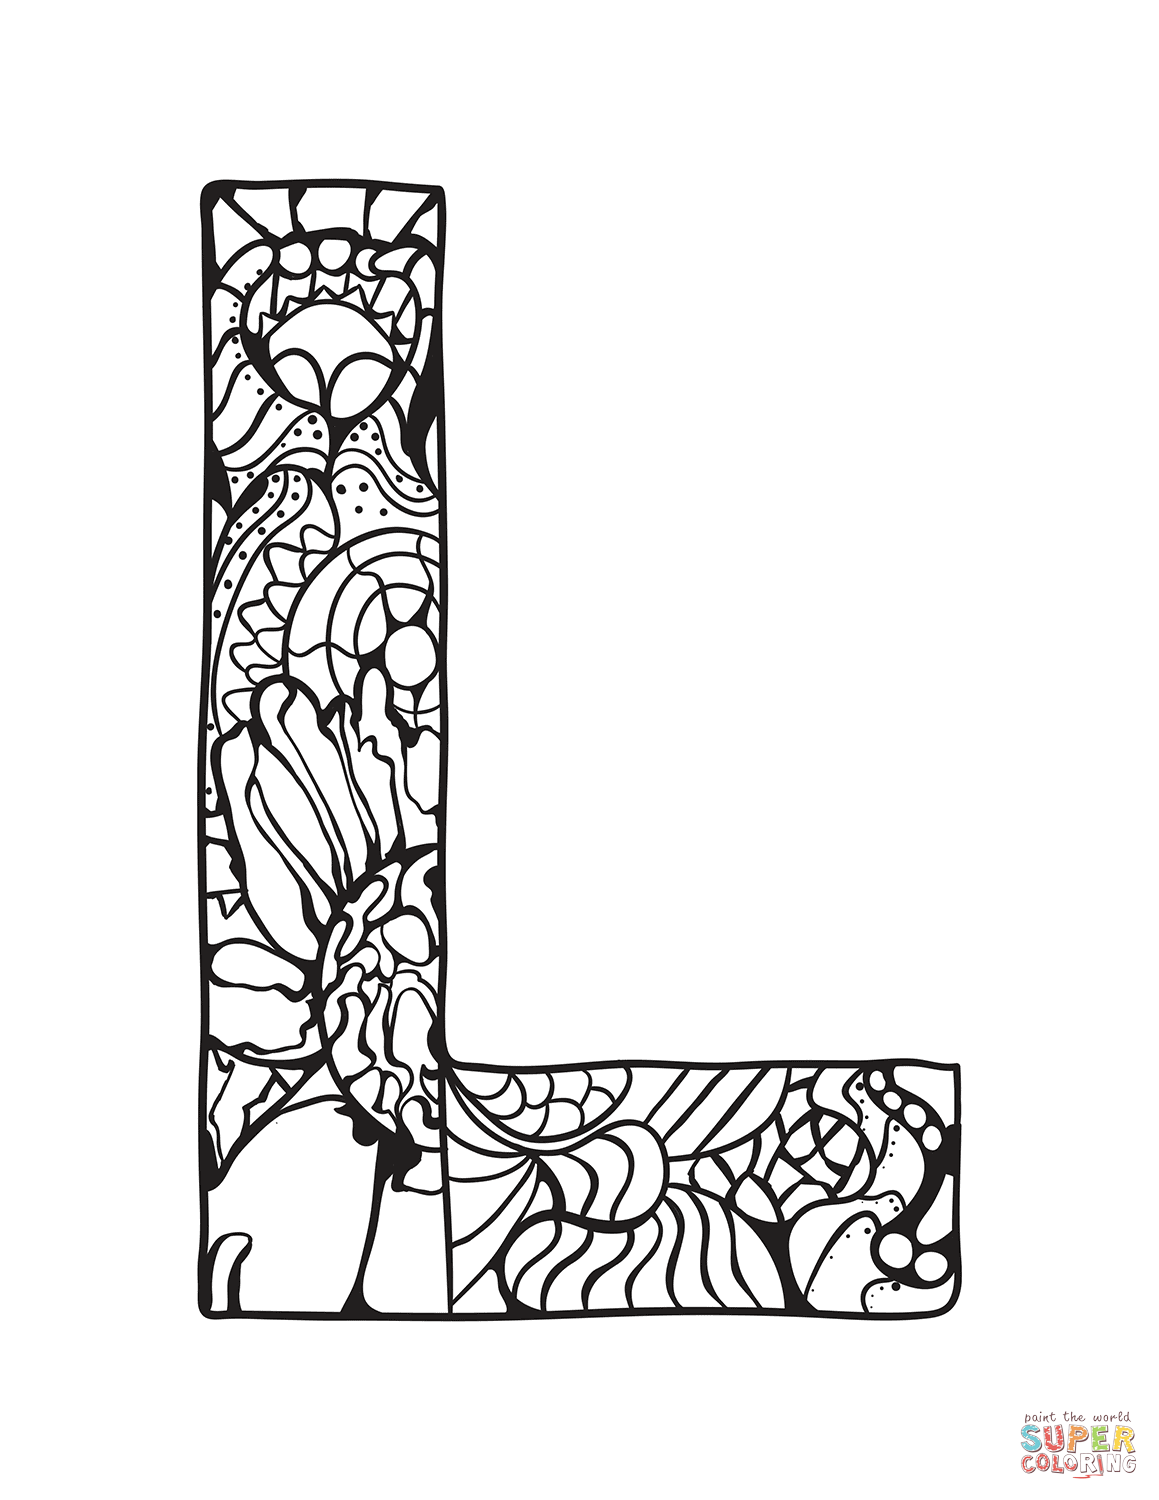 Letter L Zentangle Coloring Page Free Printable Coloring Pages Coloring Letters Free Printable Coloring Pages Coloring Pages